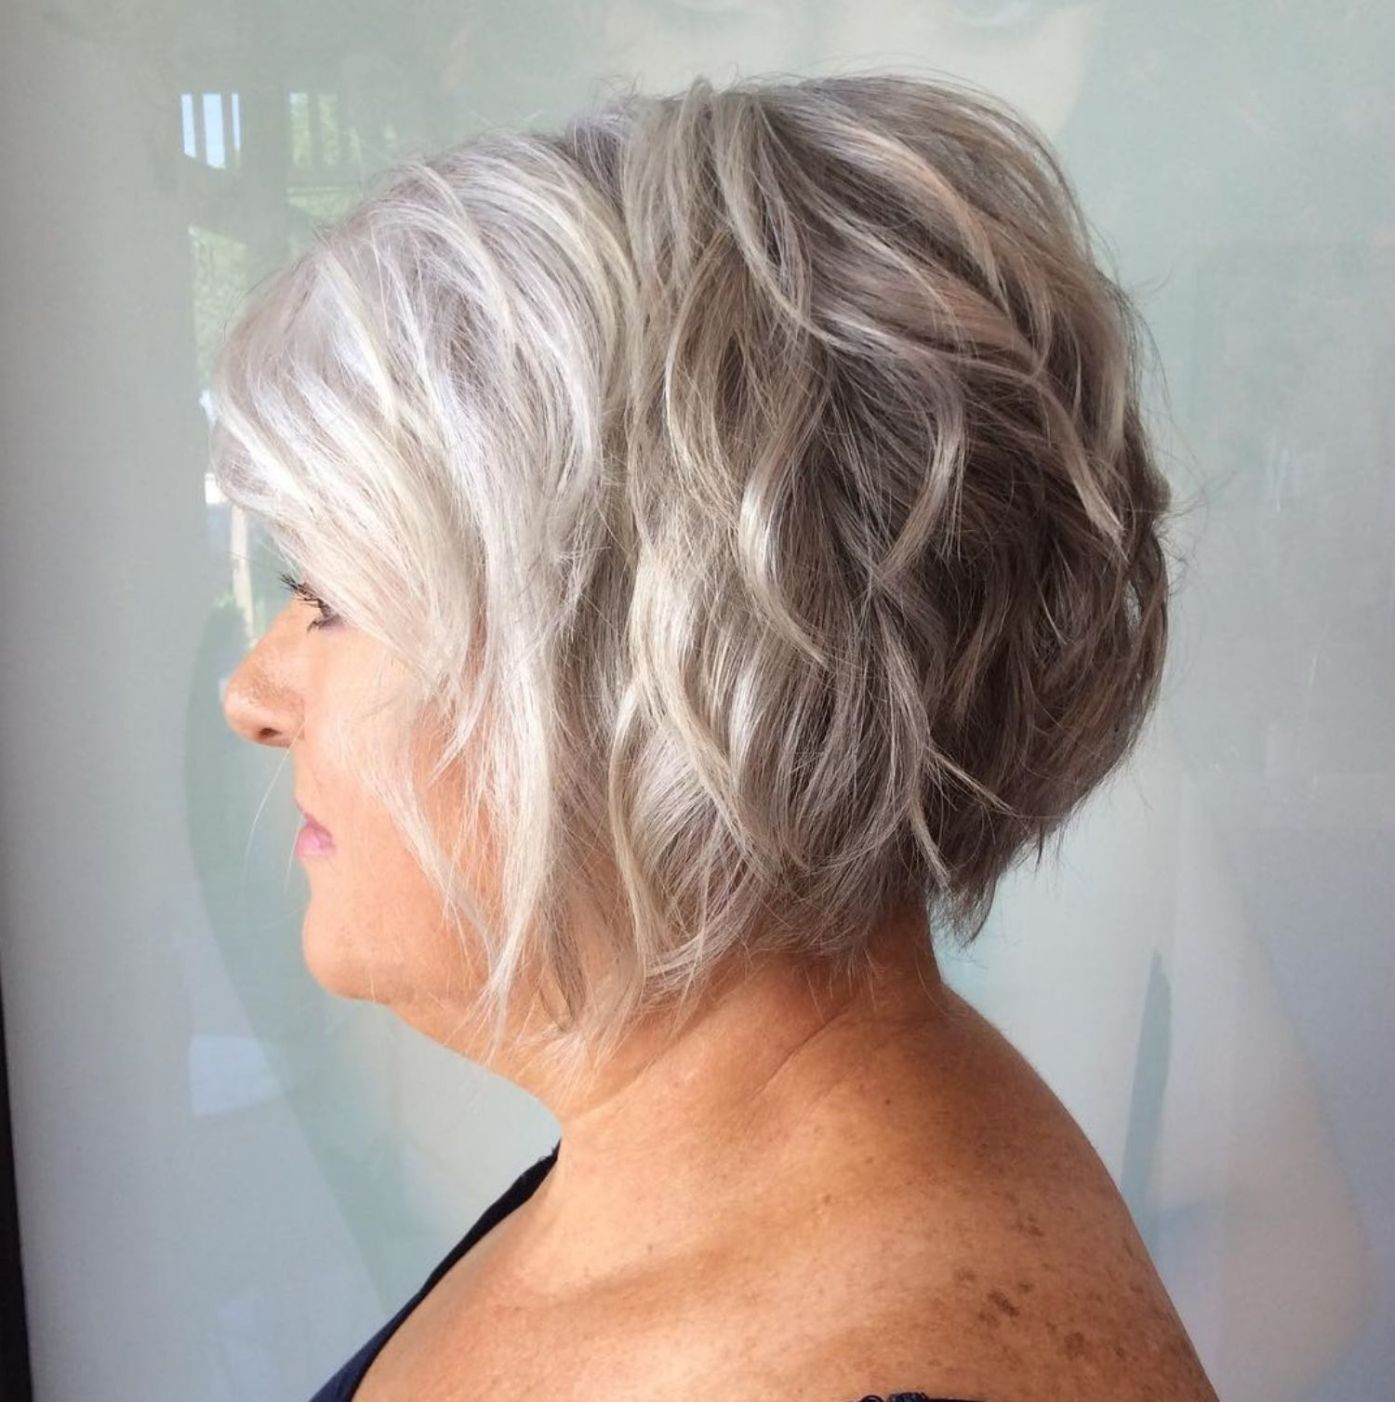 99 Cute Short Haircuts for Women Over 50 (Updated 2021) d8caccf5c470056f4b8e46e5a50a07bc